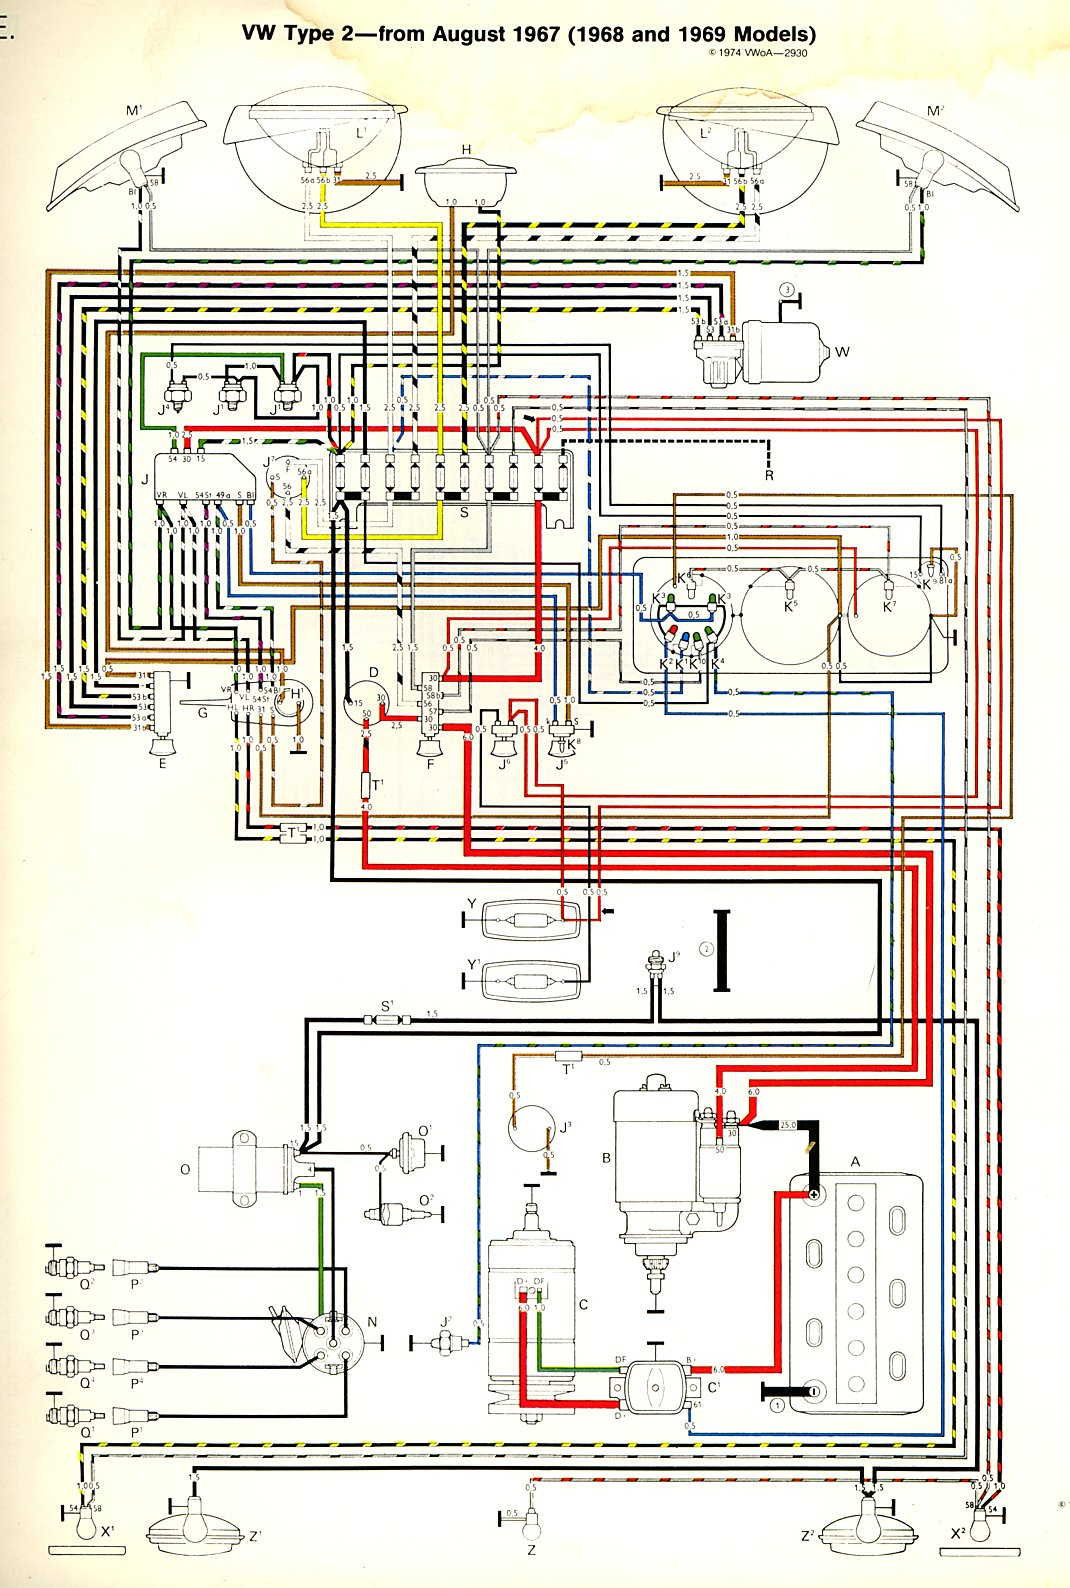 baybus_6869a 1968 vw beetle wiring diagram 1973 vw super beetle wiring diagram 1973 super beetle wiring harness at nearapp.co